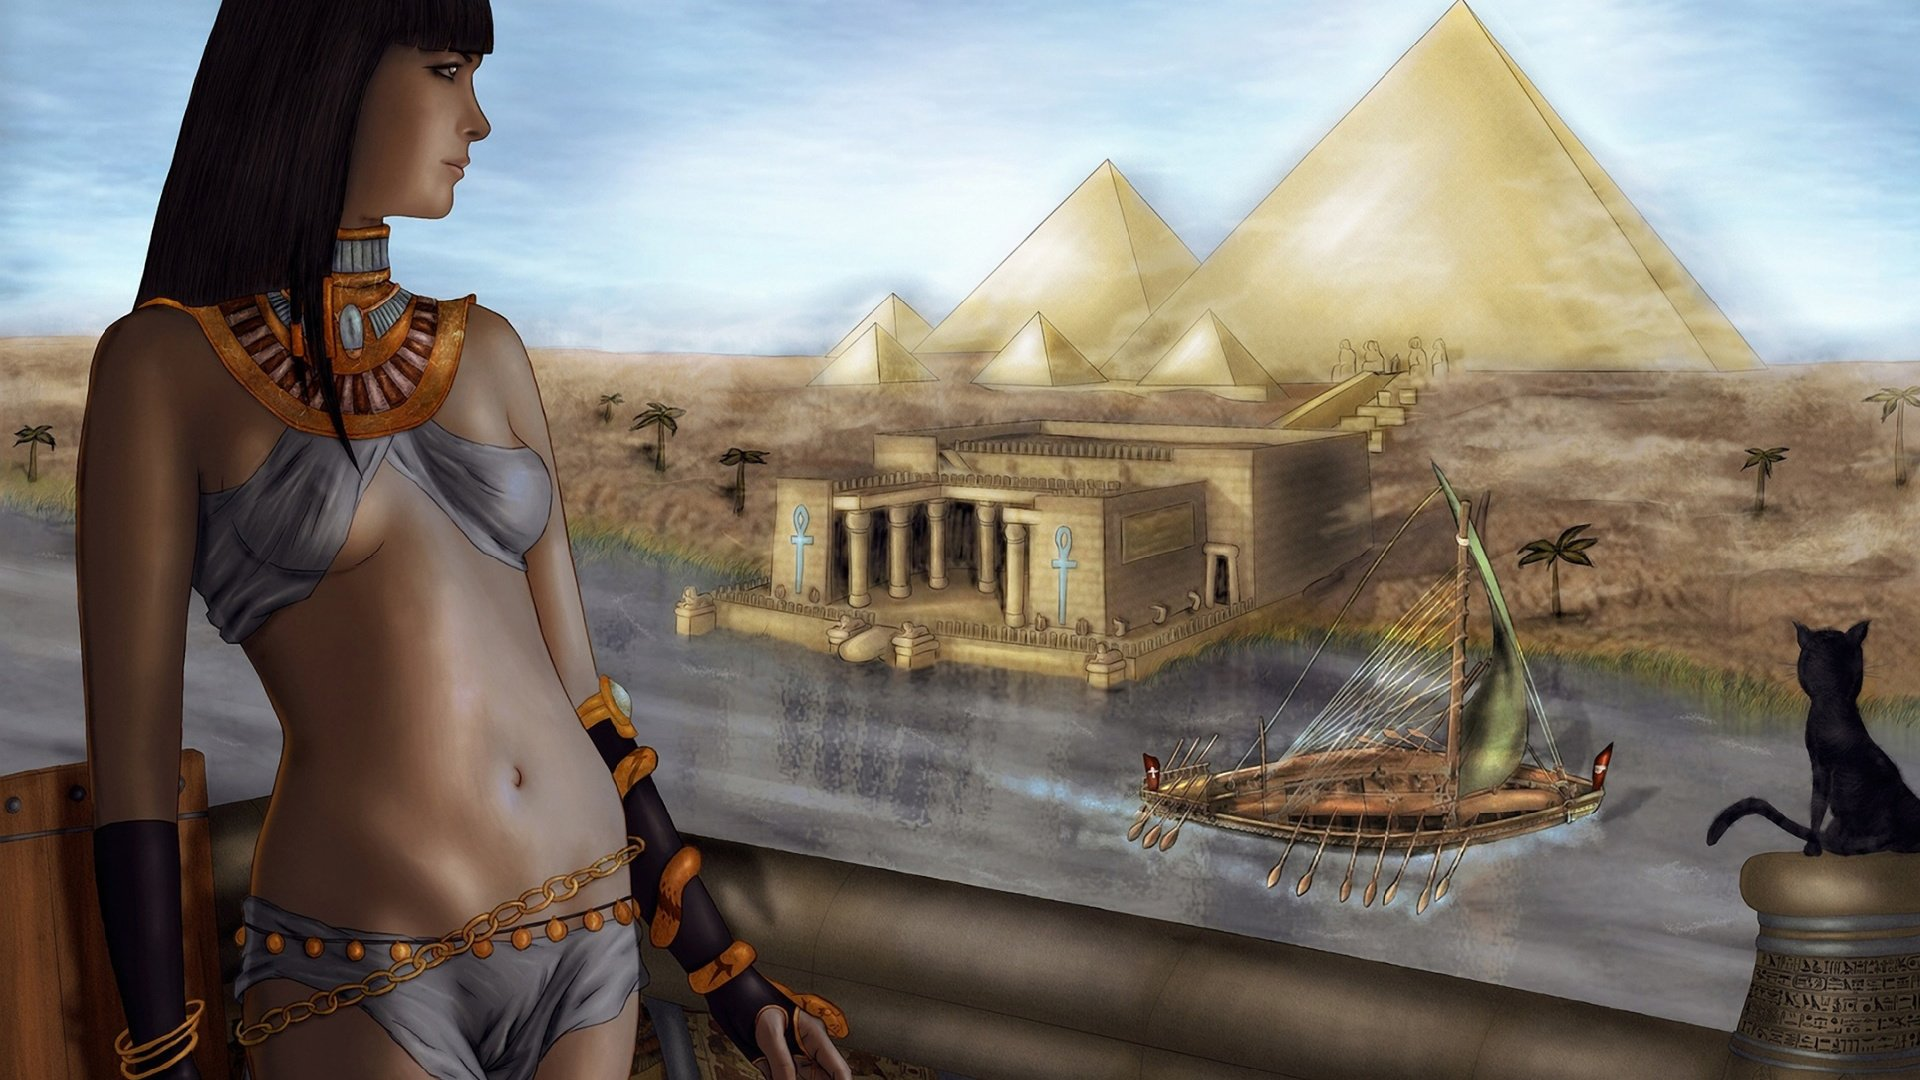 a paranormal egyptian fantasy essay In ancient egypt the pharaoh ruled and owned all of egypt and looked after the citizens of ancient egypt the most powerful thing in ancient egypt was the pharaoh this source by the british museum is a secondary source because it was created in 2013 and not during the time egyptian pharaohs lived.